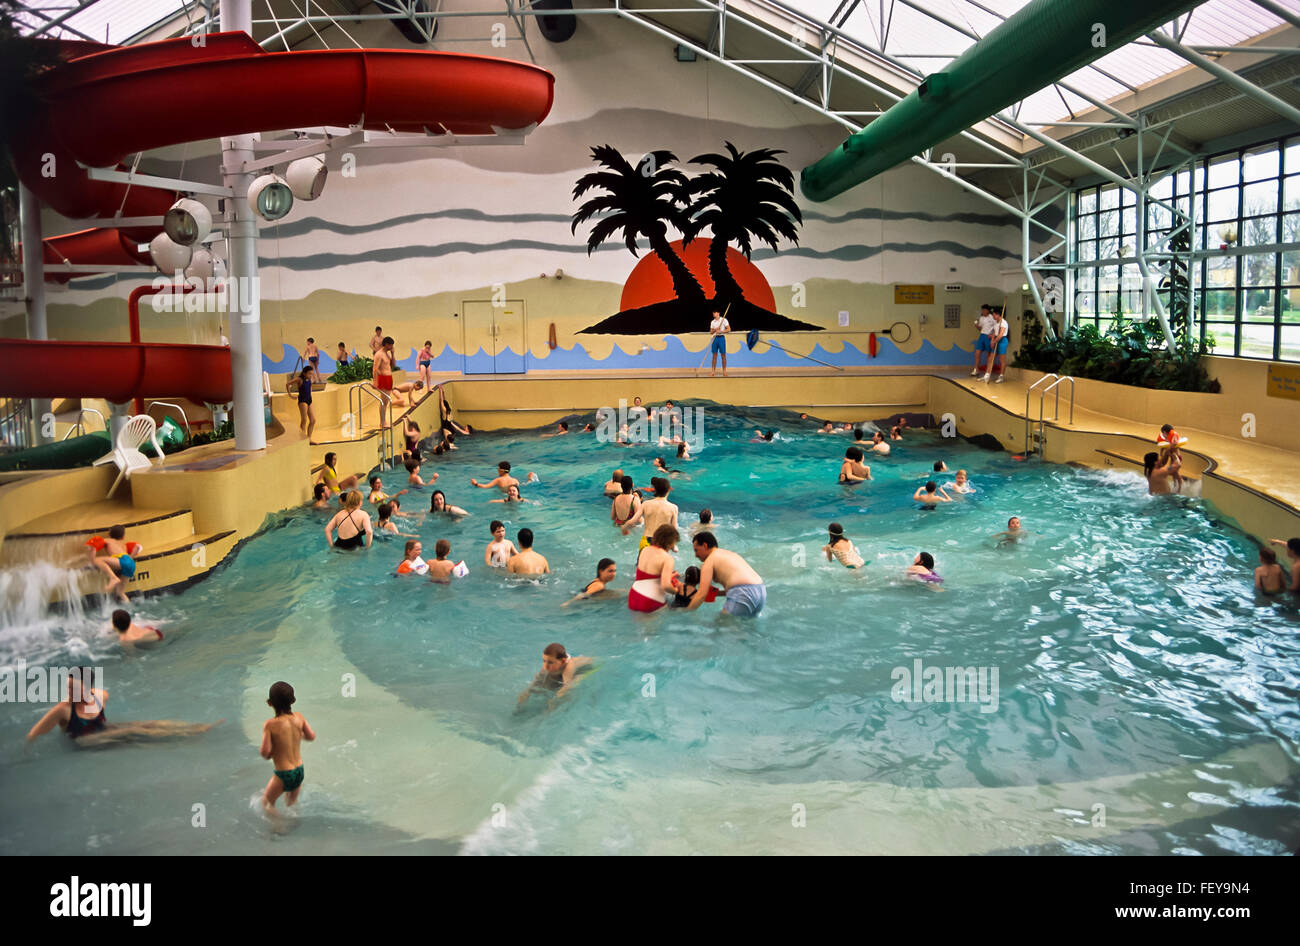 Aa 5423 deal waves swimming pool archival 1980s kent england stock photo royalty free for Waves swimming pool whitley bay